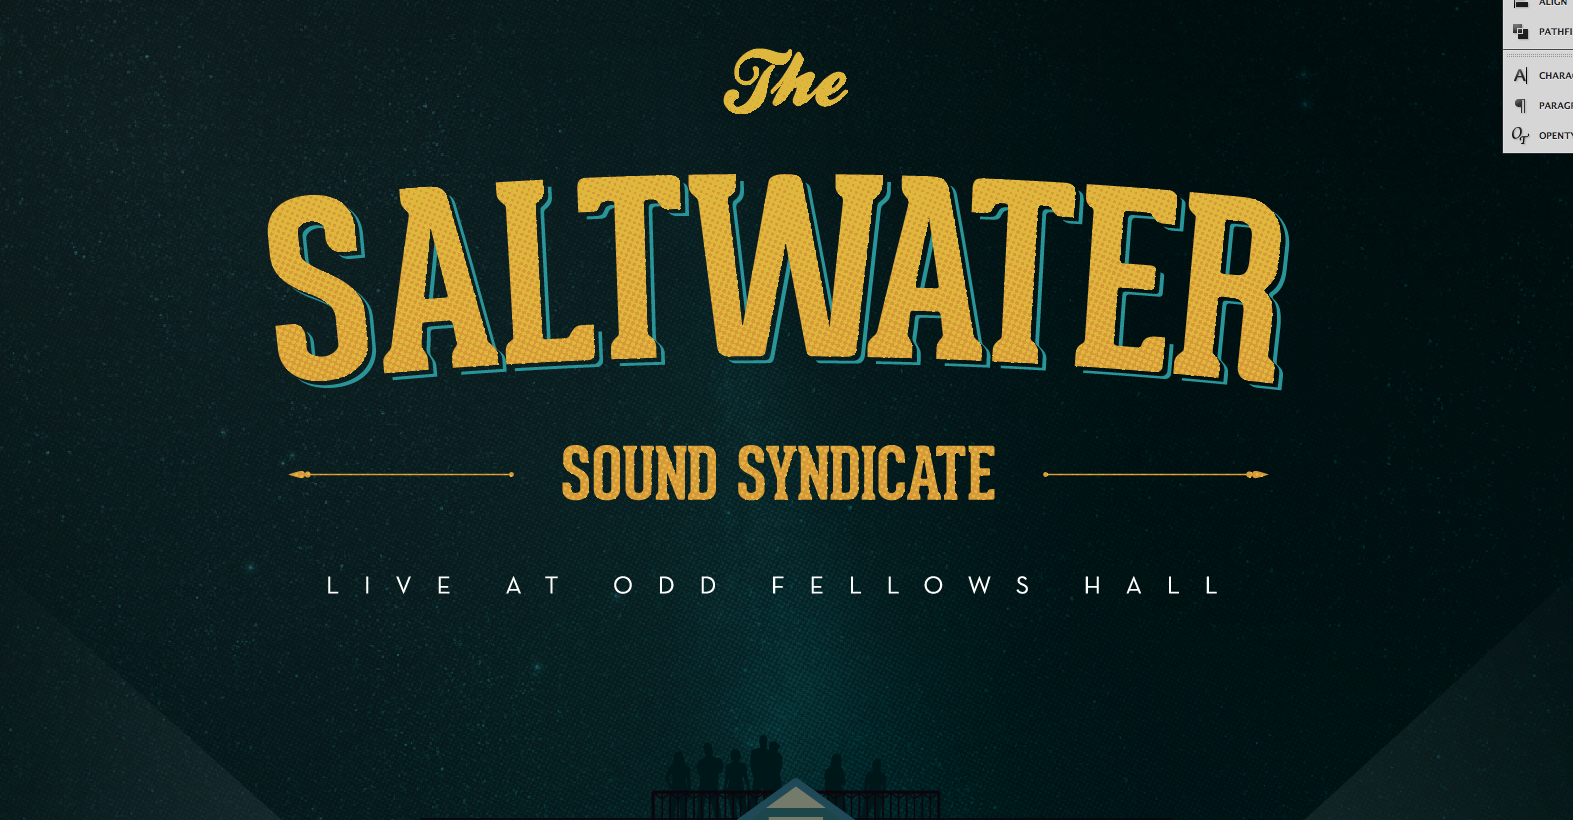 Saltwater Live from Odd Fellows Hall - image 20 - student project